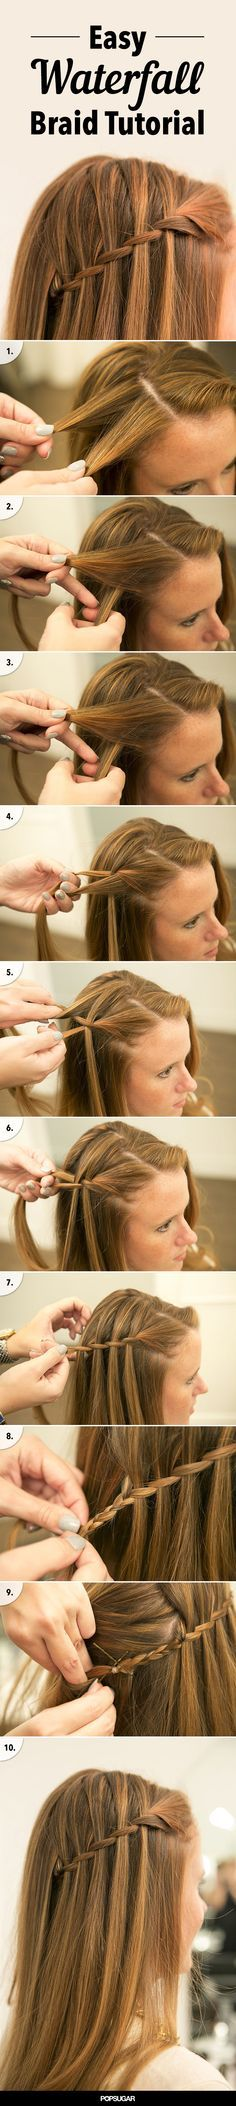 How to #DIY a waterfall braid. #waterfallbraid #braid